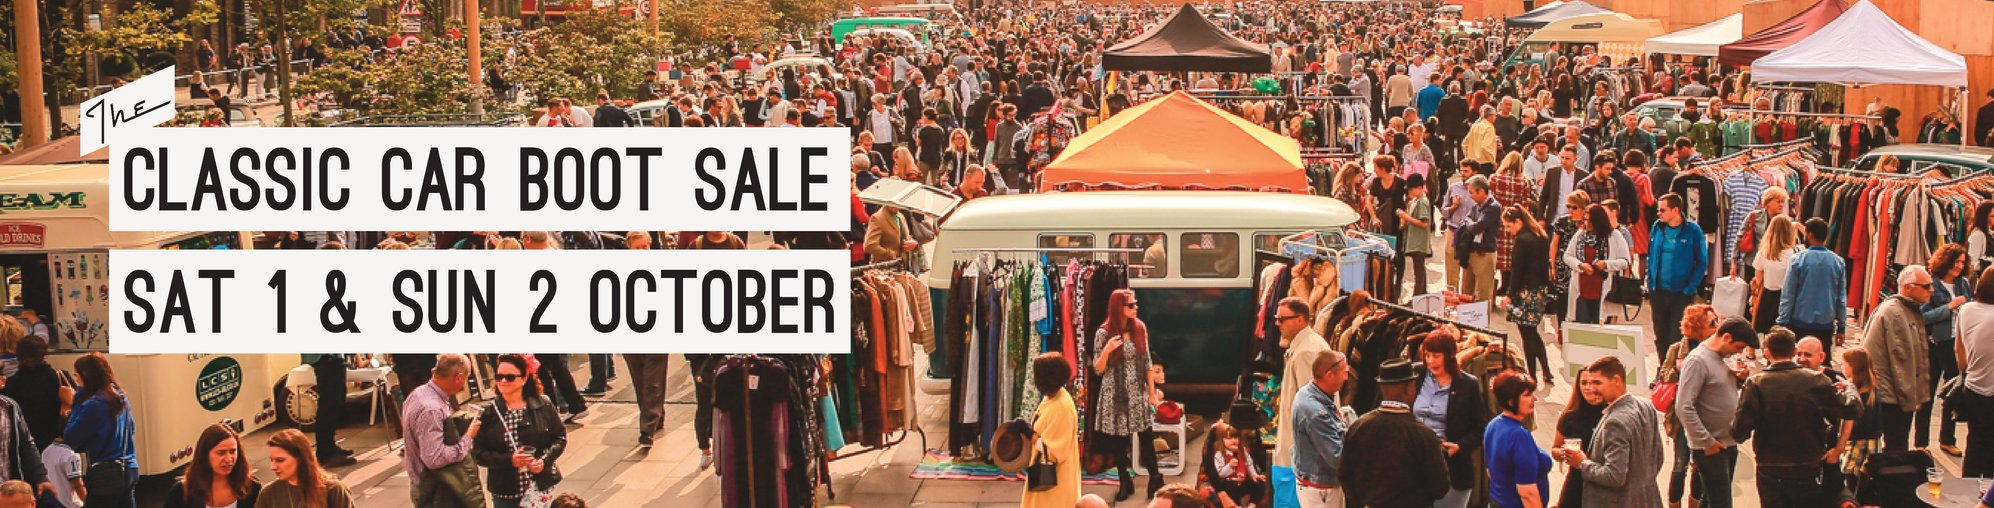 CLASSIC CAR BOOT SALE OCTOBER KINGS CROSS